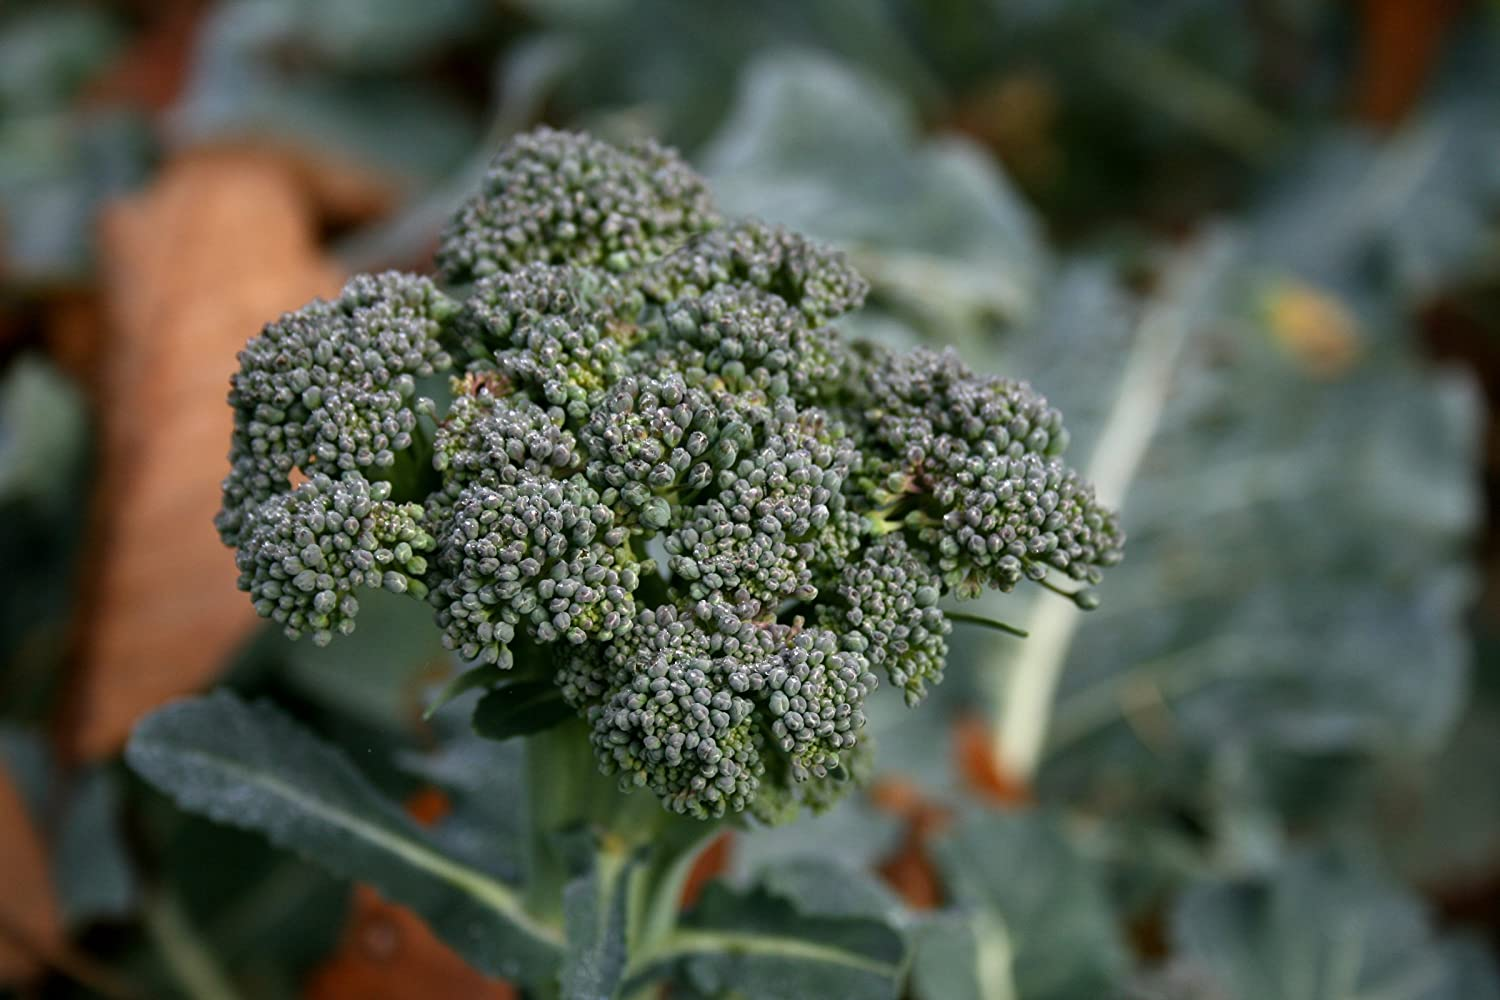 3.0+g Gaeas Blessing Seeds Organic Waltham 29 Broccoli 500+ Organic Seeds Non-GMO Open Pollinated 94/% Germination Rate Waltham 29 Net Wt